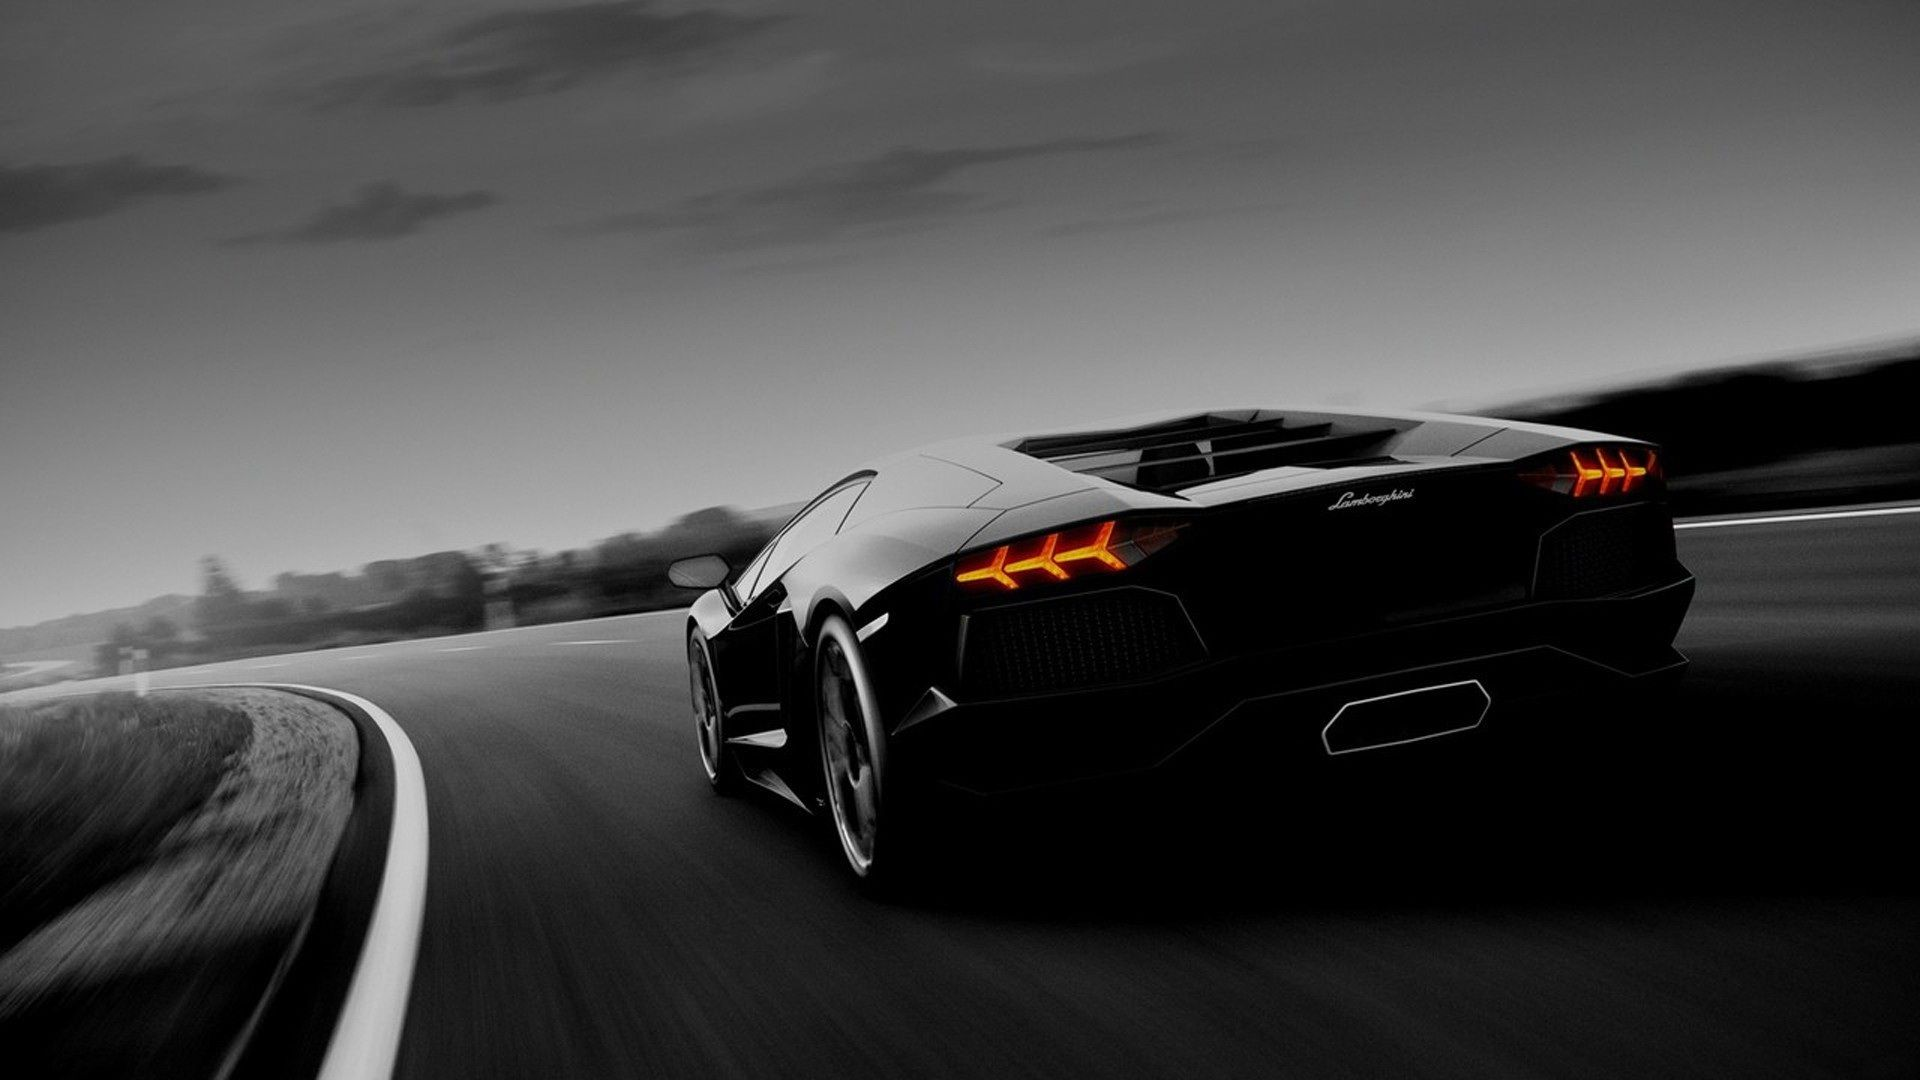 Lamborghini Wallpapers Top Free Lamborghini Backgrounds